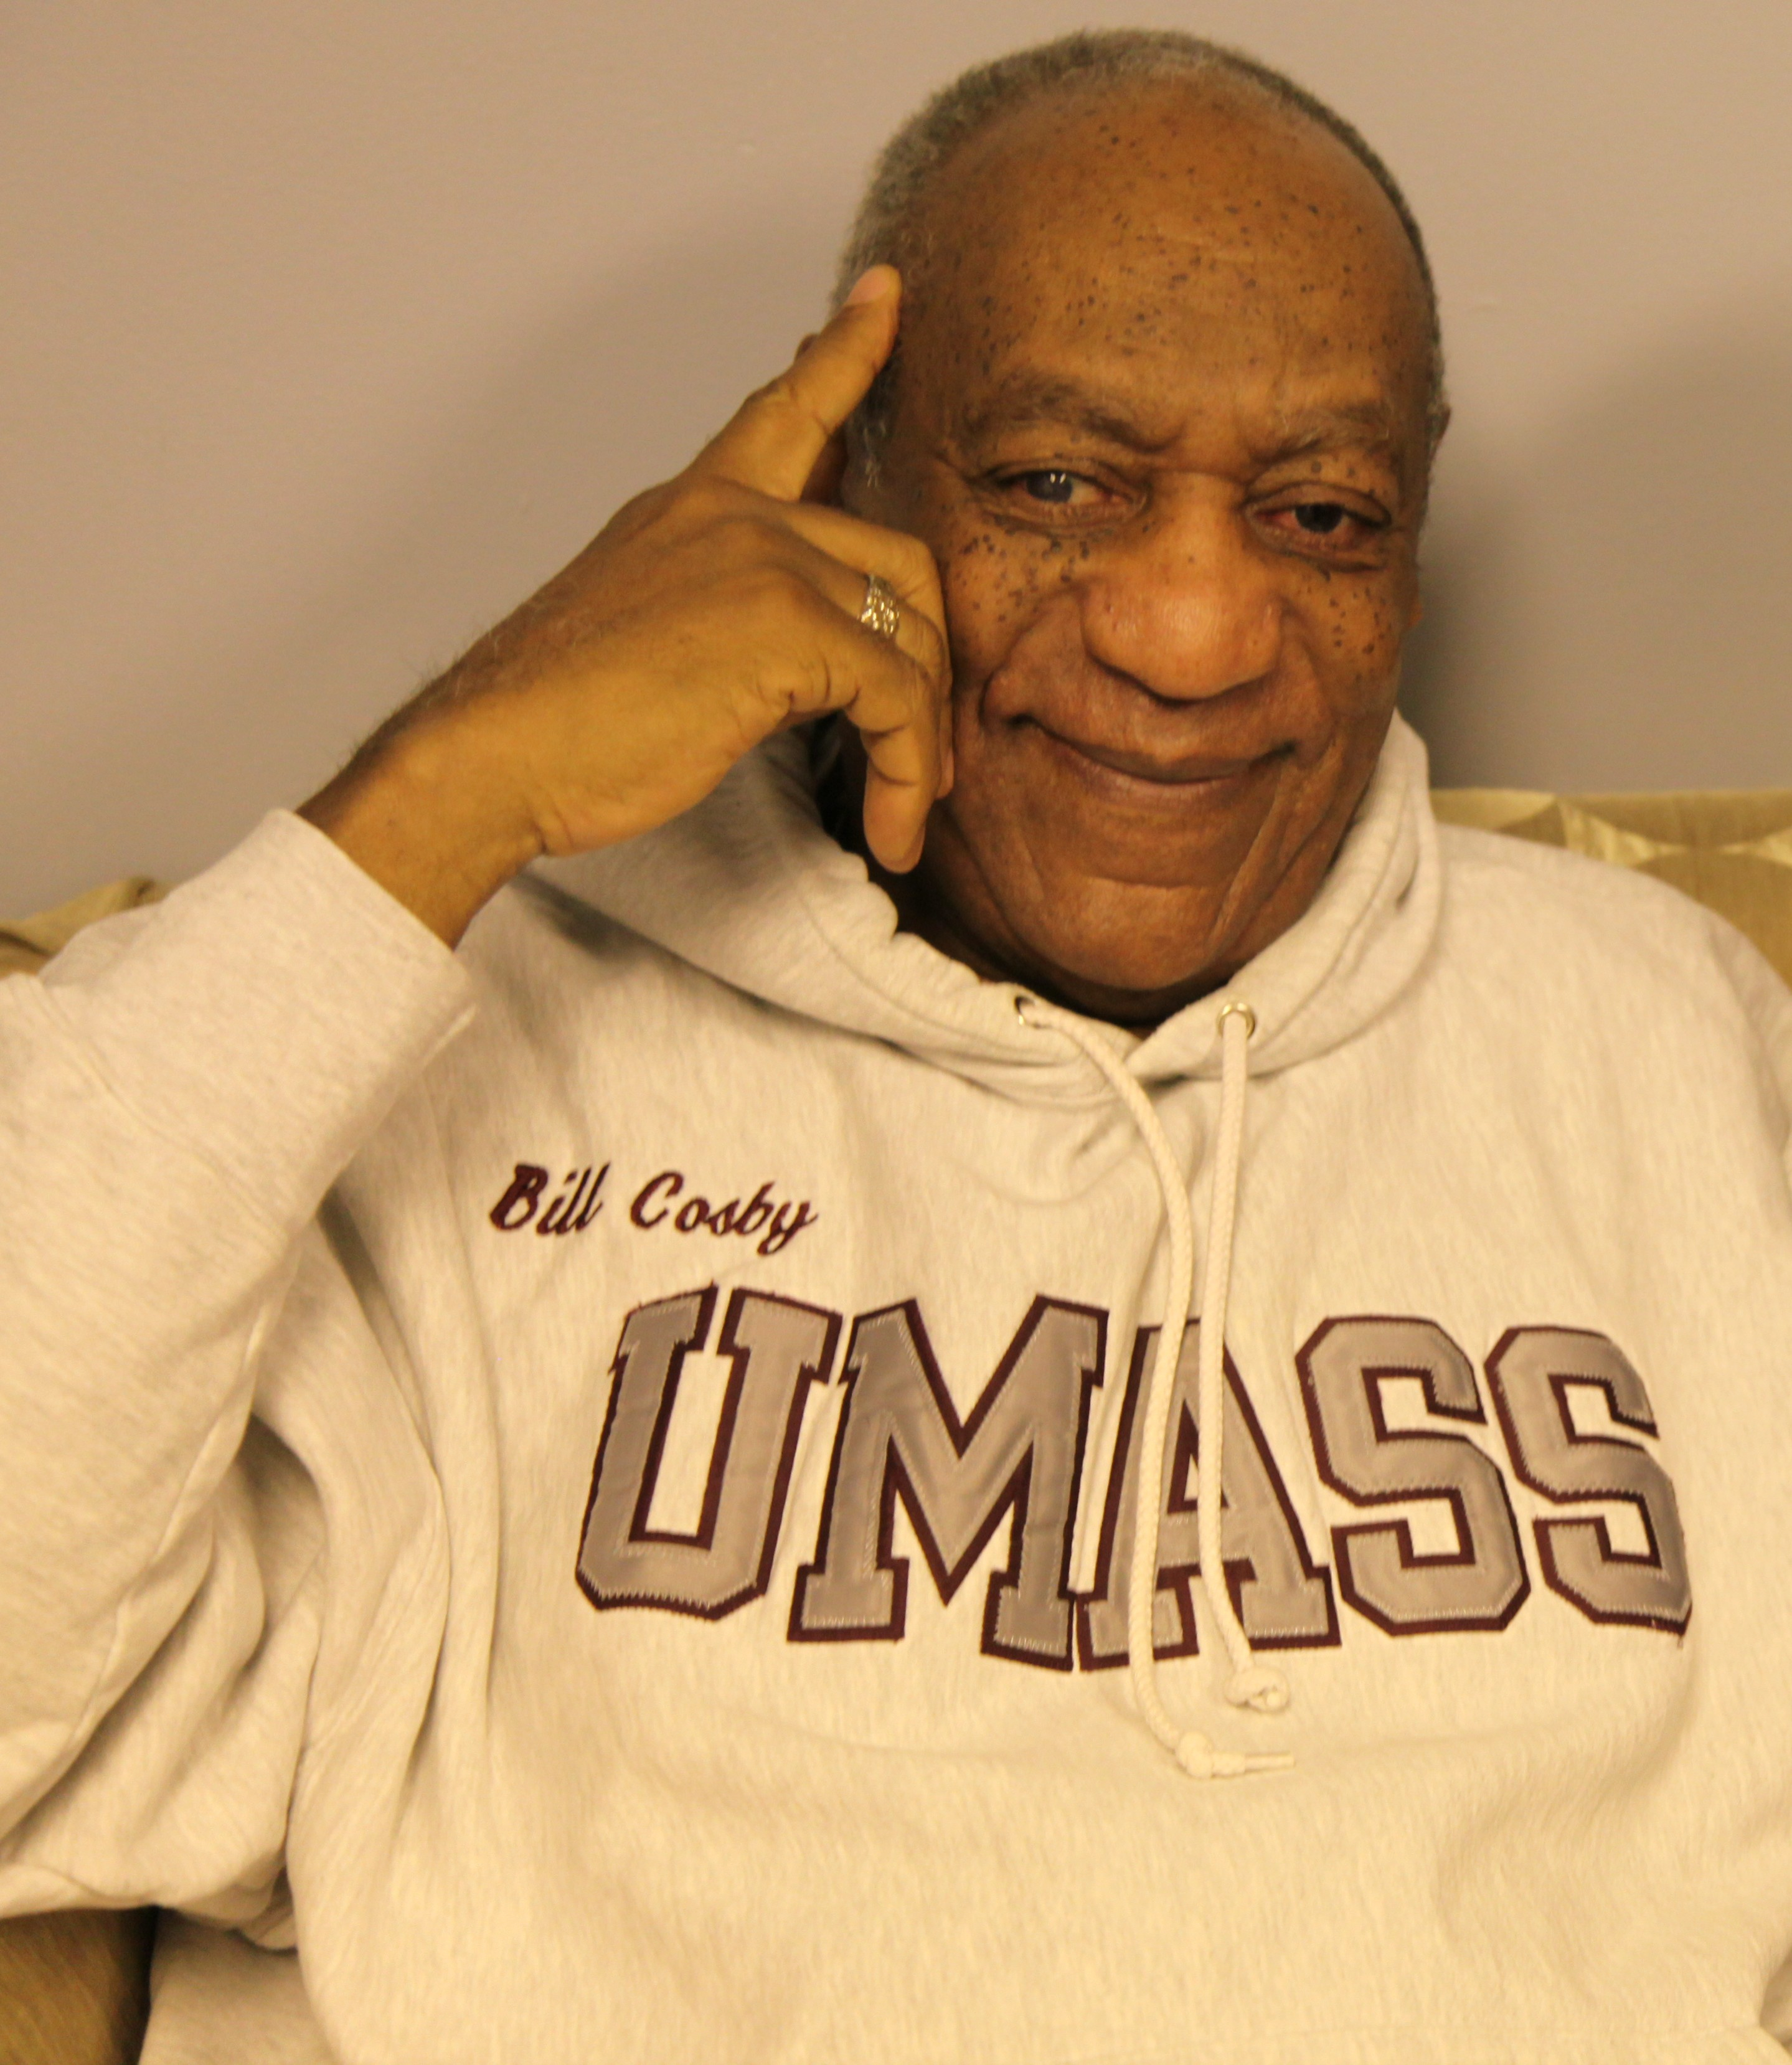 File:2012 Bill Cosby.jpg - Wikimedia Commons